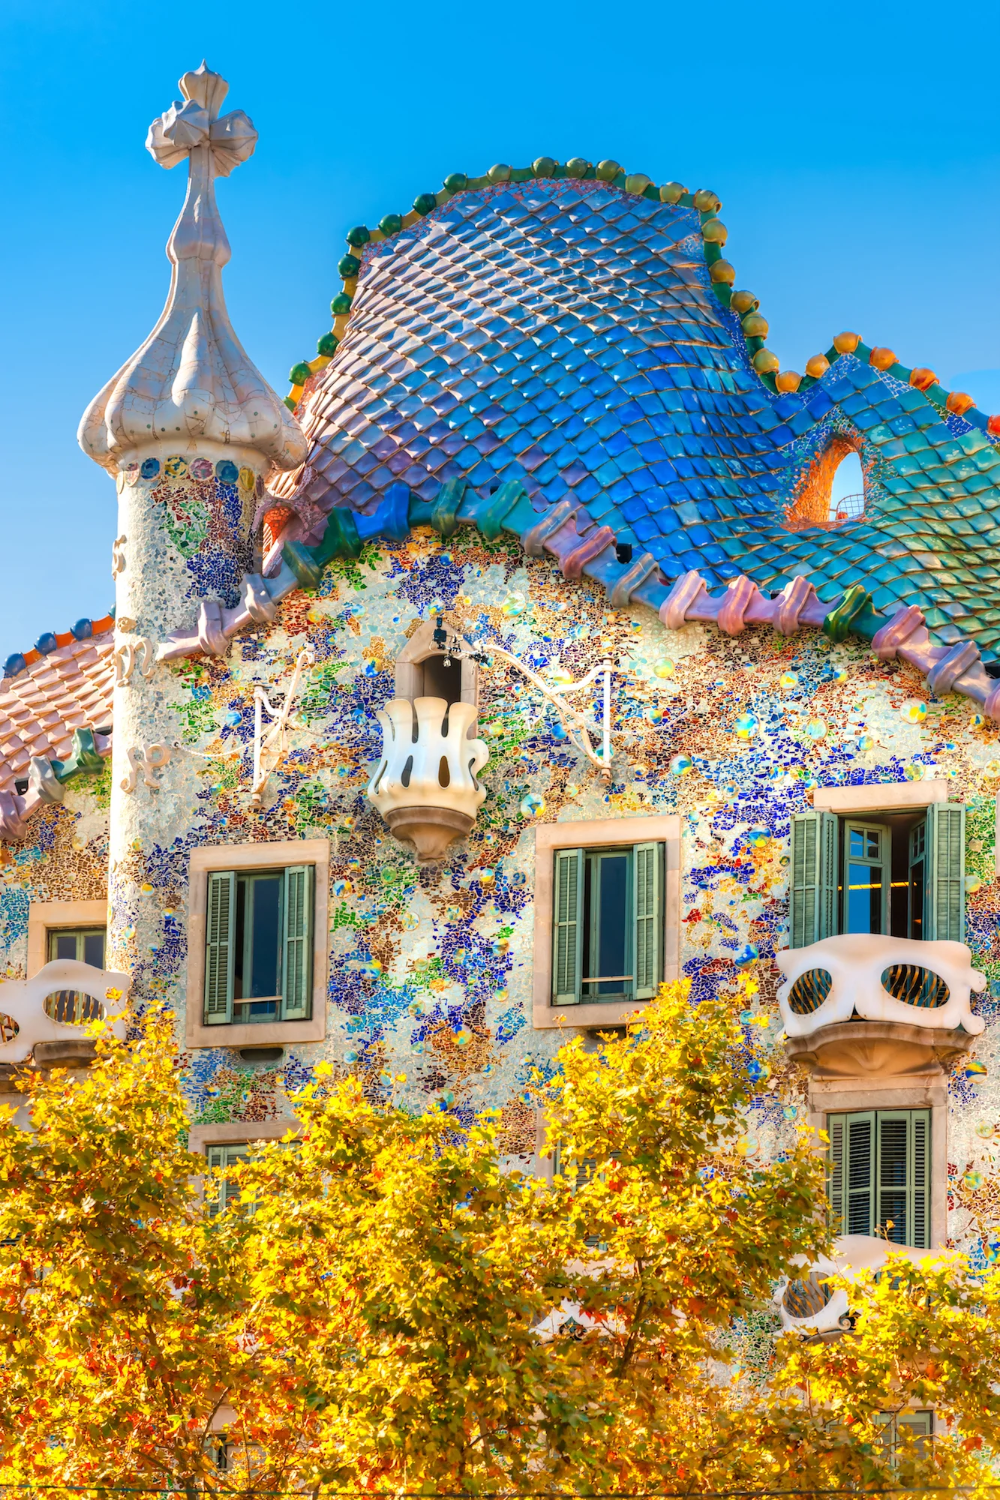 How Antoni Gaudí Came to Define Barcelona's Architecture | Architectural Digest